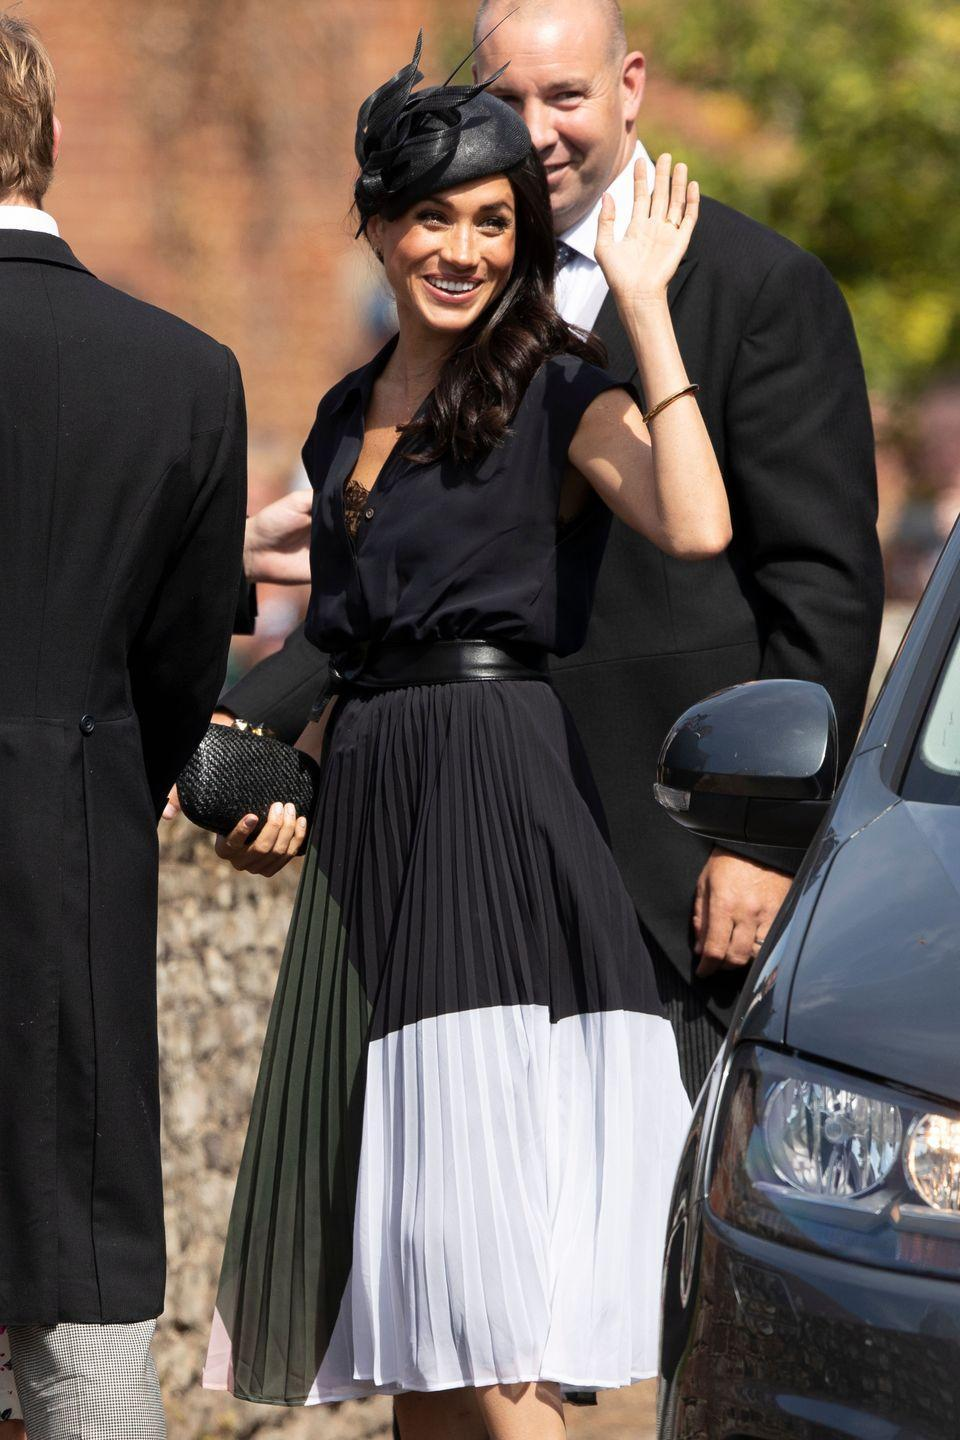 "<p>Meghan celebrated her birthday (and Charlie van Straubenzee's wedding) in a colorful dress paired with a Philip Treacy fascinator. <a href=""https://www.townandcountrymag.com/style/fashion-trends/a22639732/meghan-markle-colorful-navy-dress-charlie-van-straubenzee-wedding/"" rel=""nofollow noopener"" target=""_blank"" data-ylk=""slk:Get all the details right here."" class=""link rapid-noclick-resp"">Get all the details right here.</a></p>"